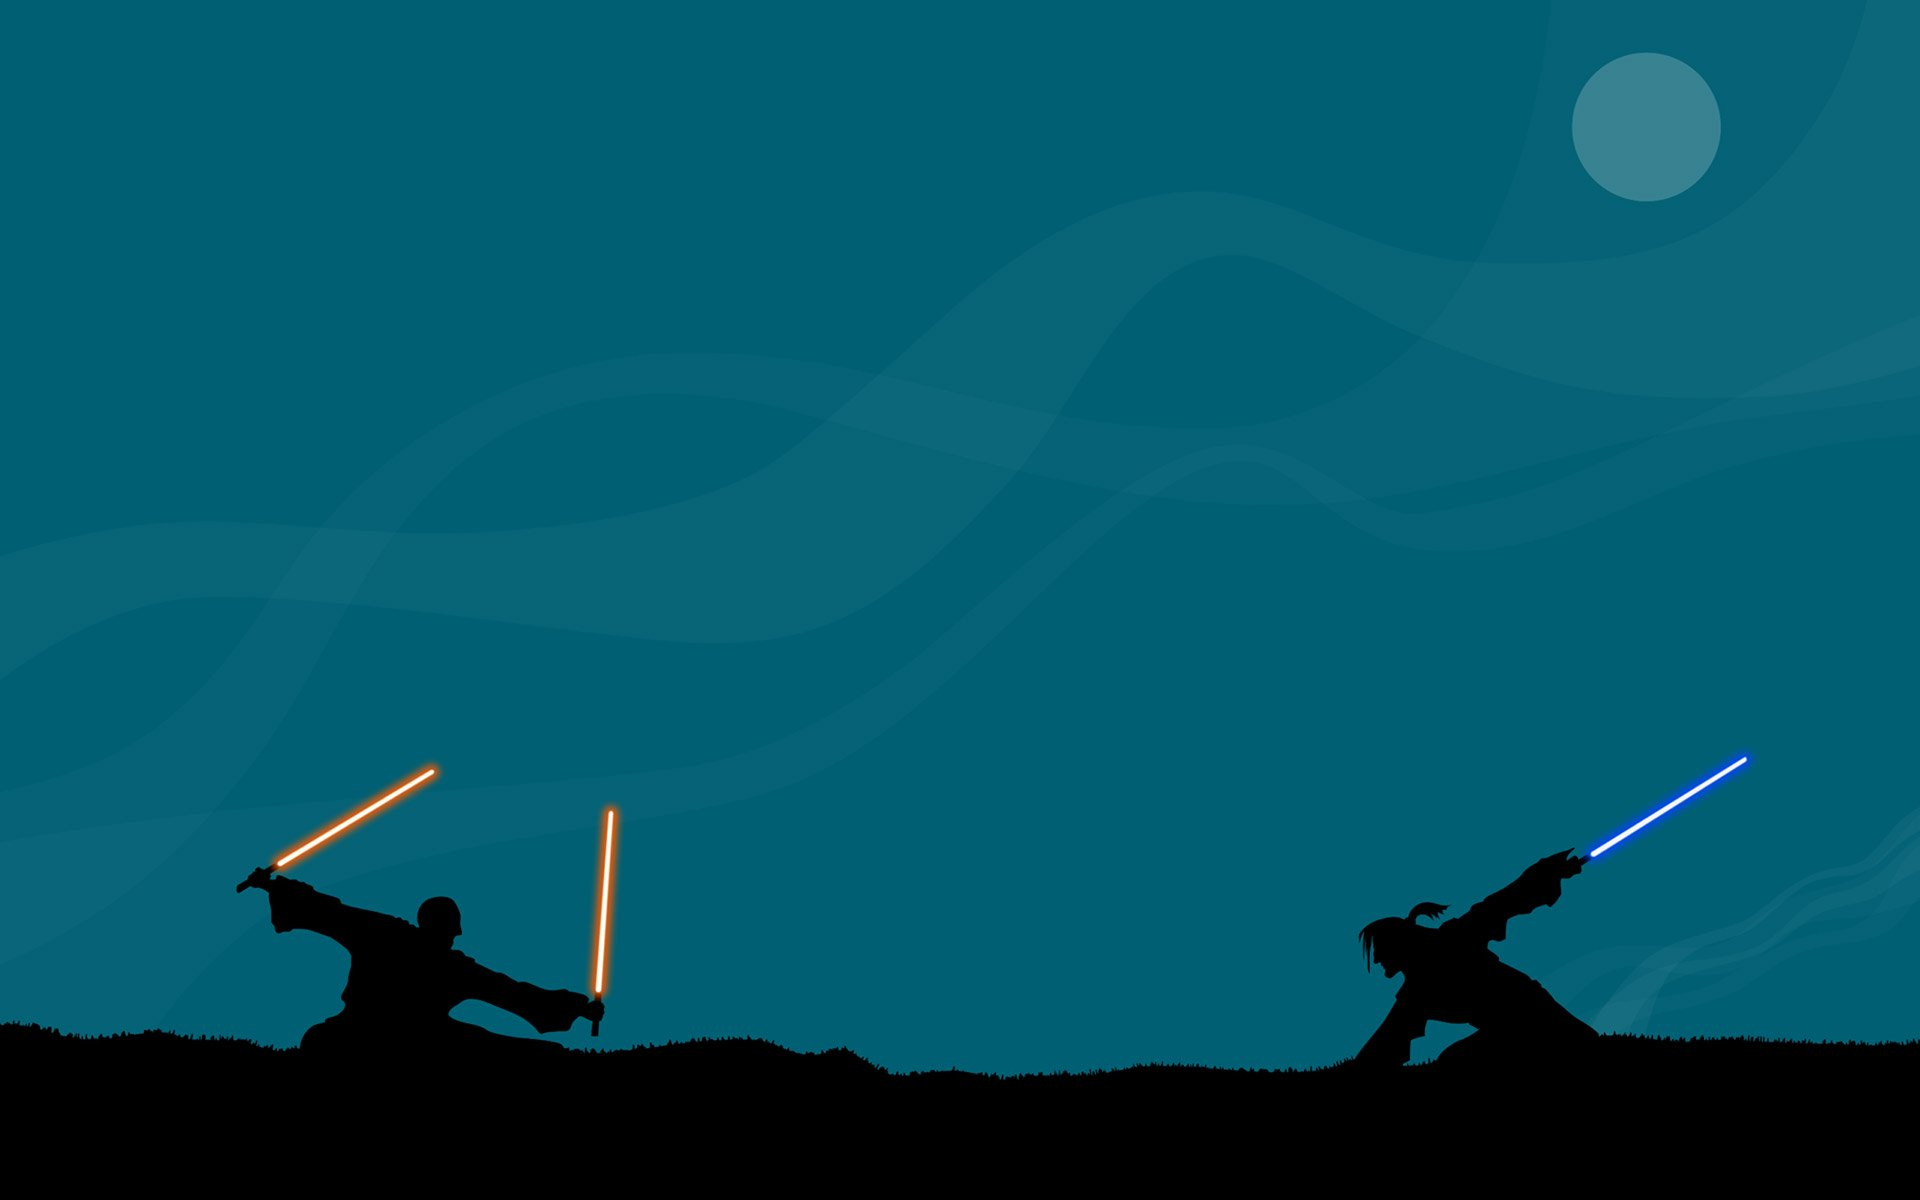 star wars wallpaper 21